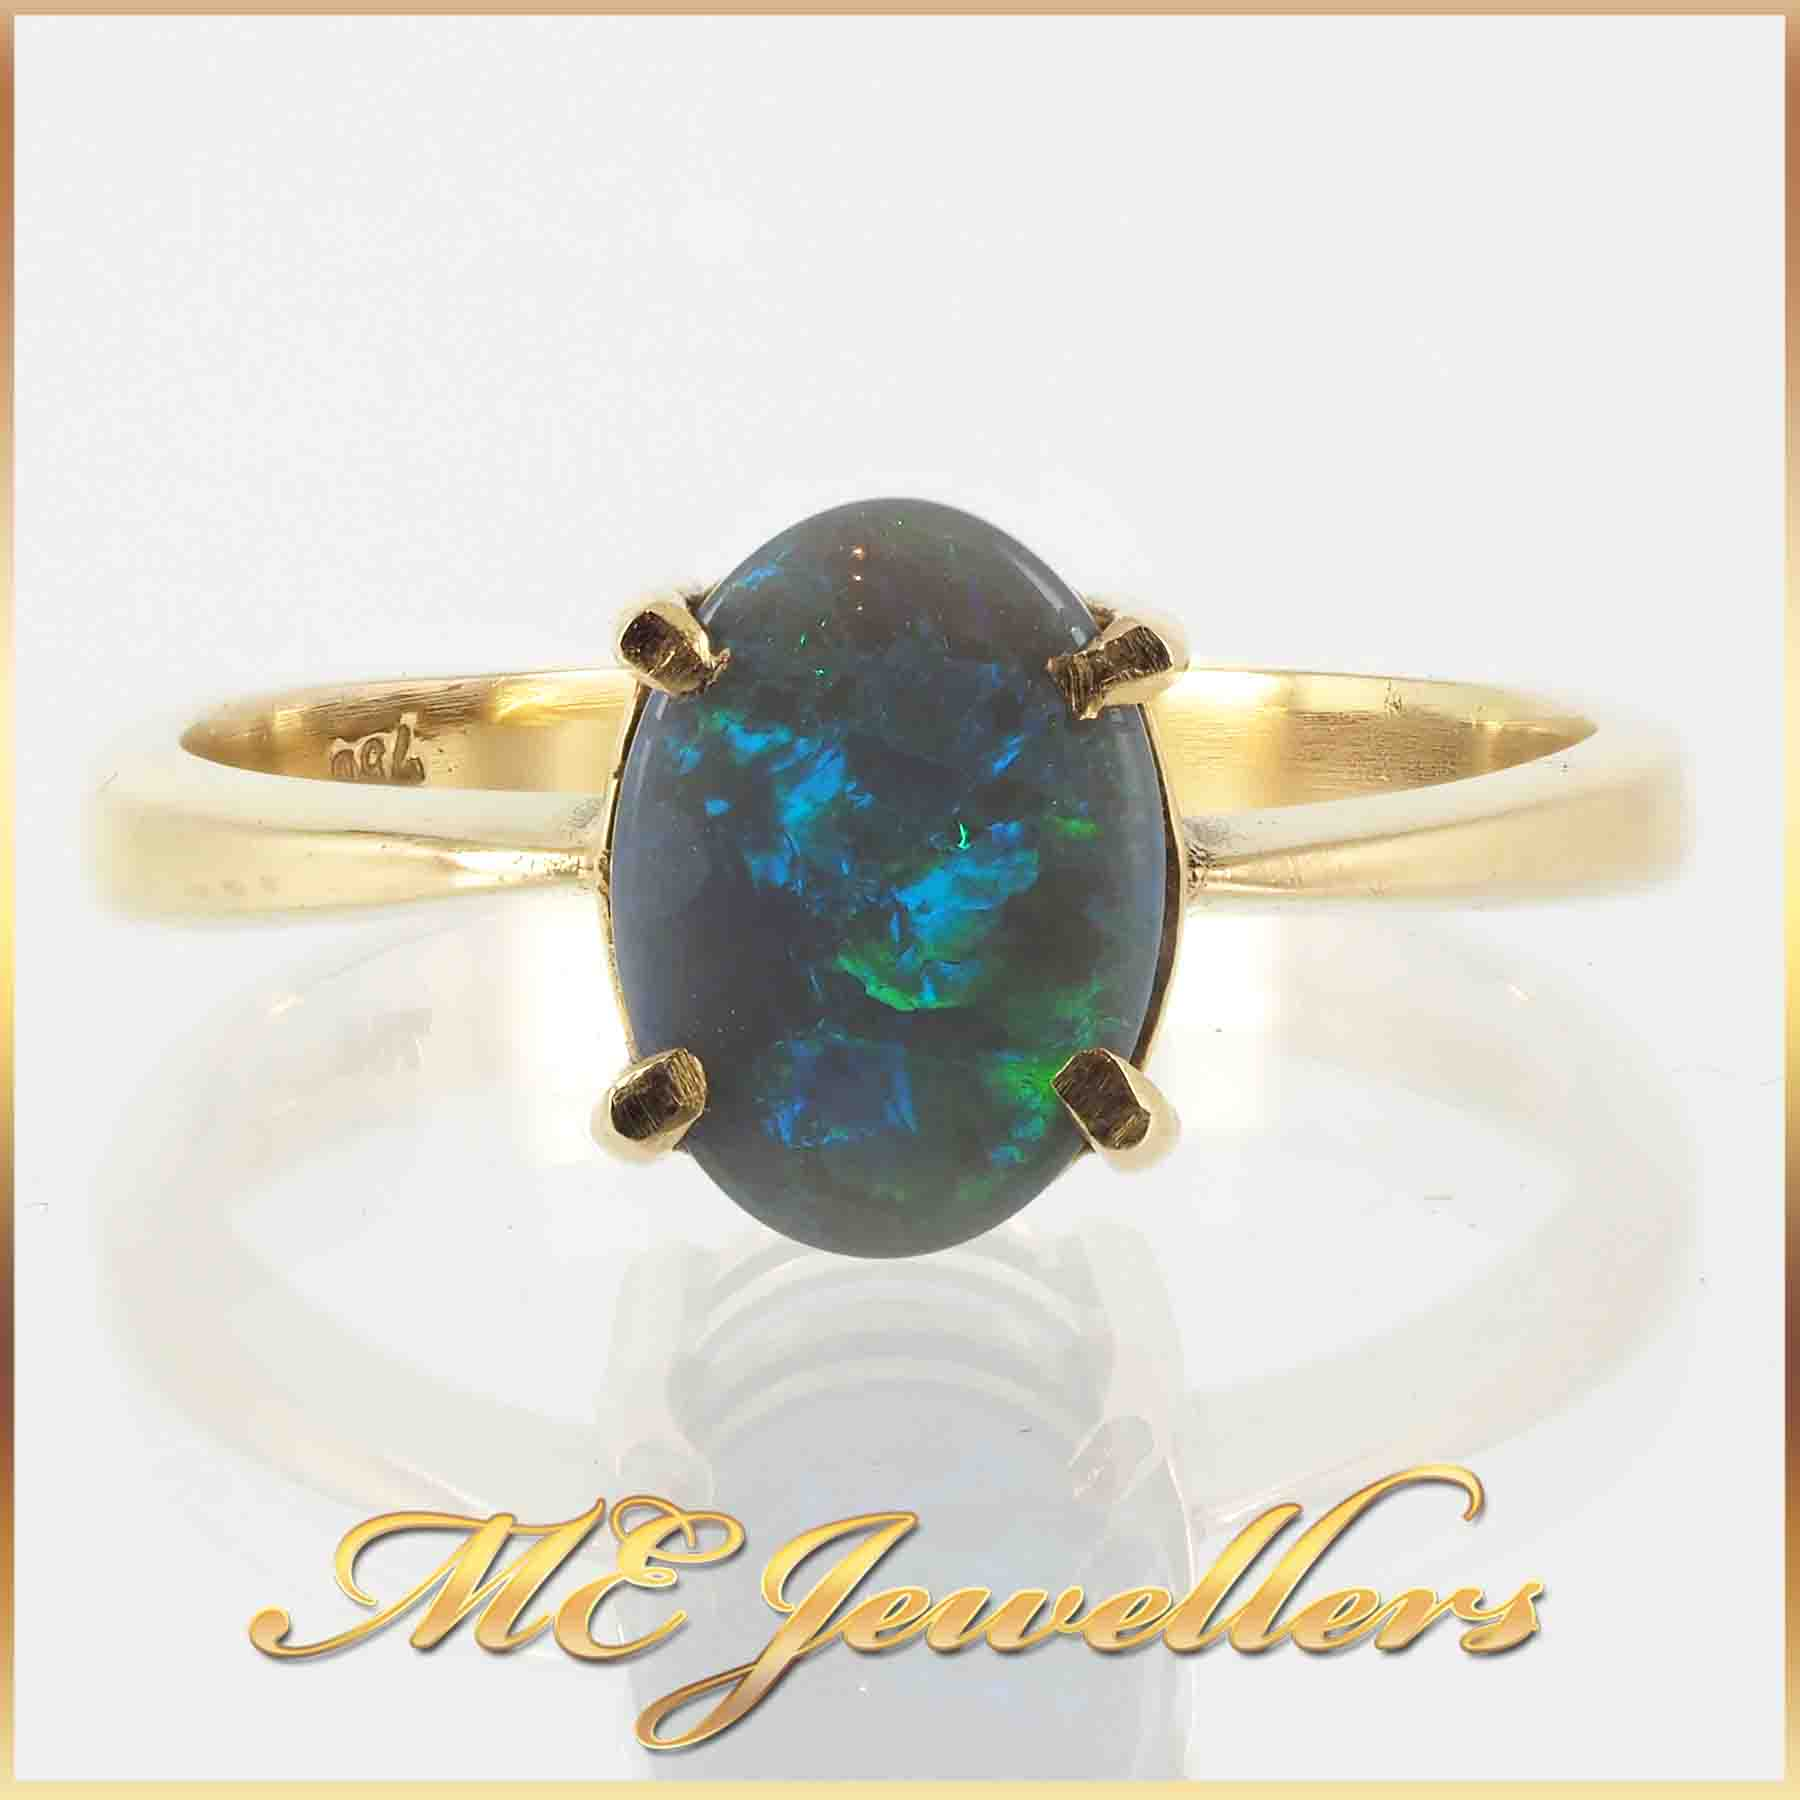 1751-solid-opal-ring-18k-yellow-gold-5